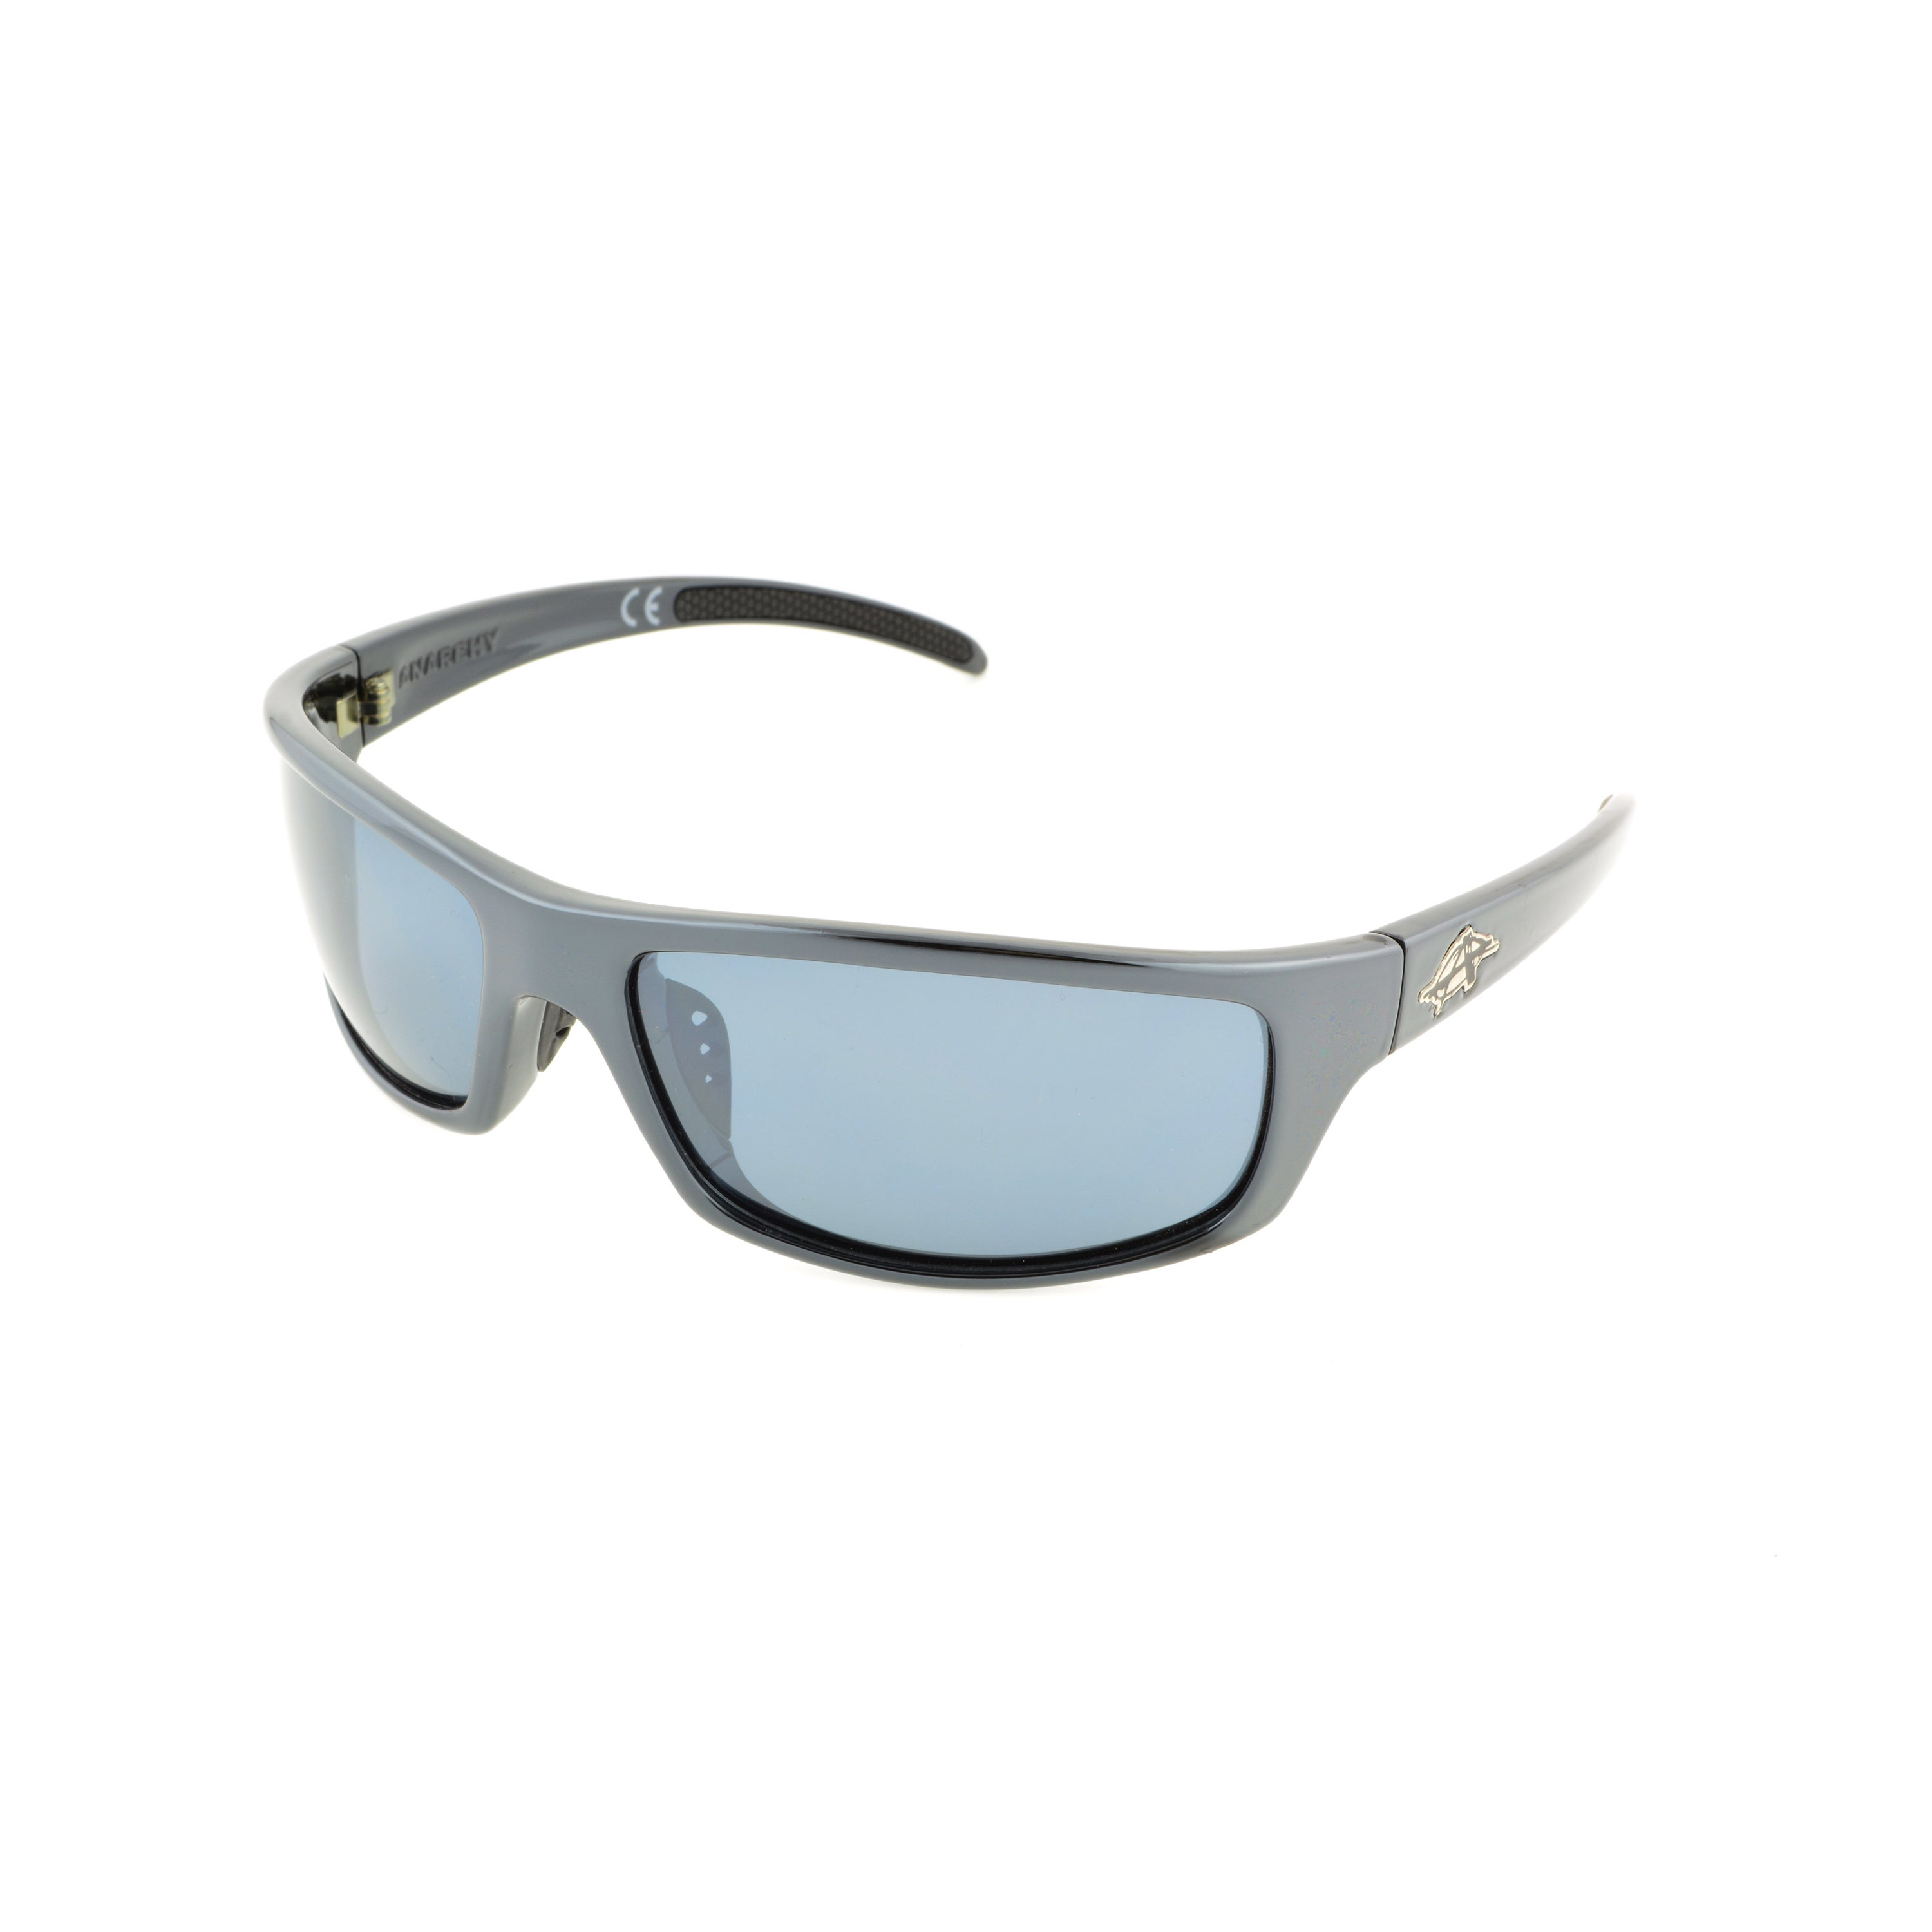 15ae33c9c2e9 Shop Anarchy Unisex  Skeptical  Polarized Sunglasses - Medium - Free  Shipping On Orders Over  45 - Overstock - 9176757